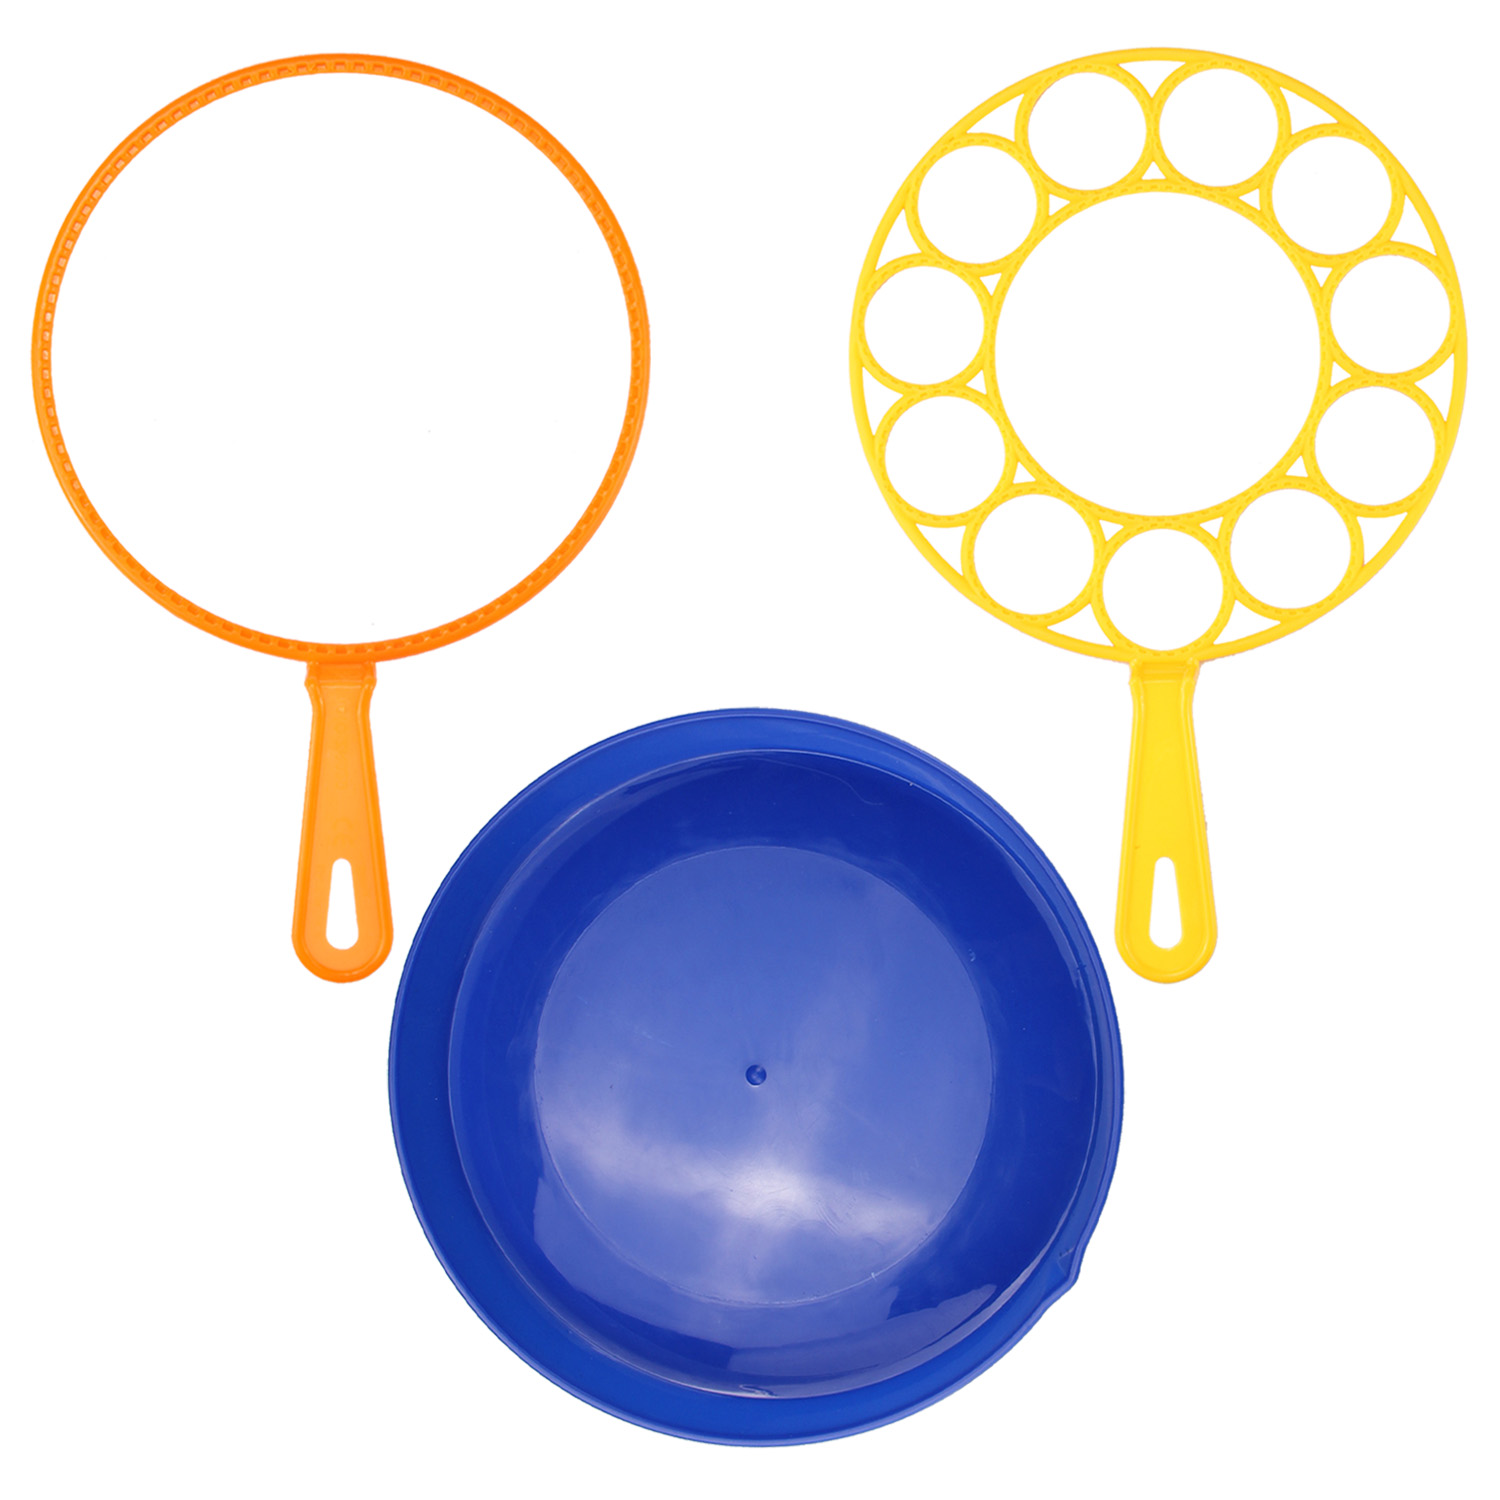 3pcs Funny Water Bubbles Makers Sport Soap Bubble Making Wand Blowers For Kids Children Adults Outdoor Play Party Backyard Game